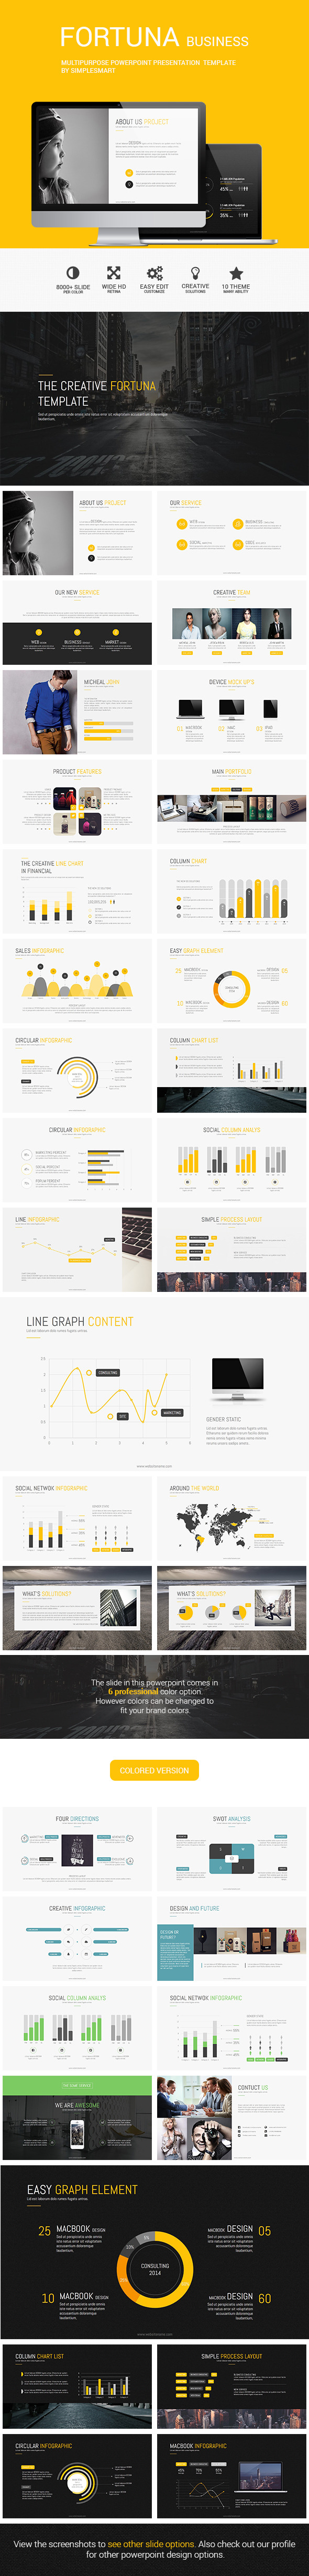 FORTUNA Multipurpose Presentation Template